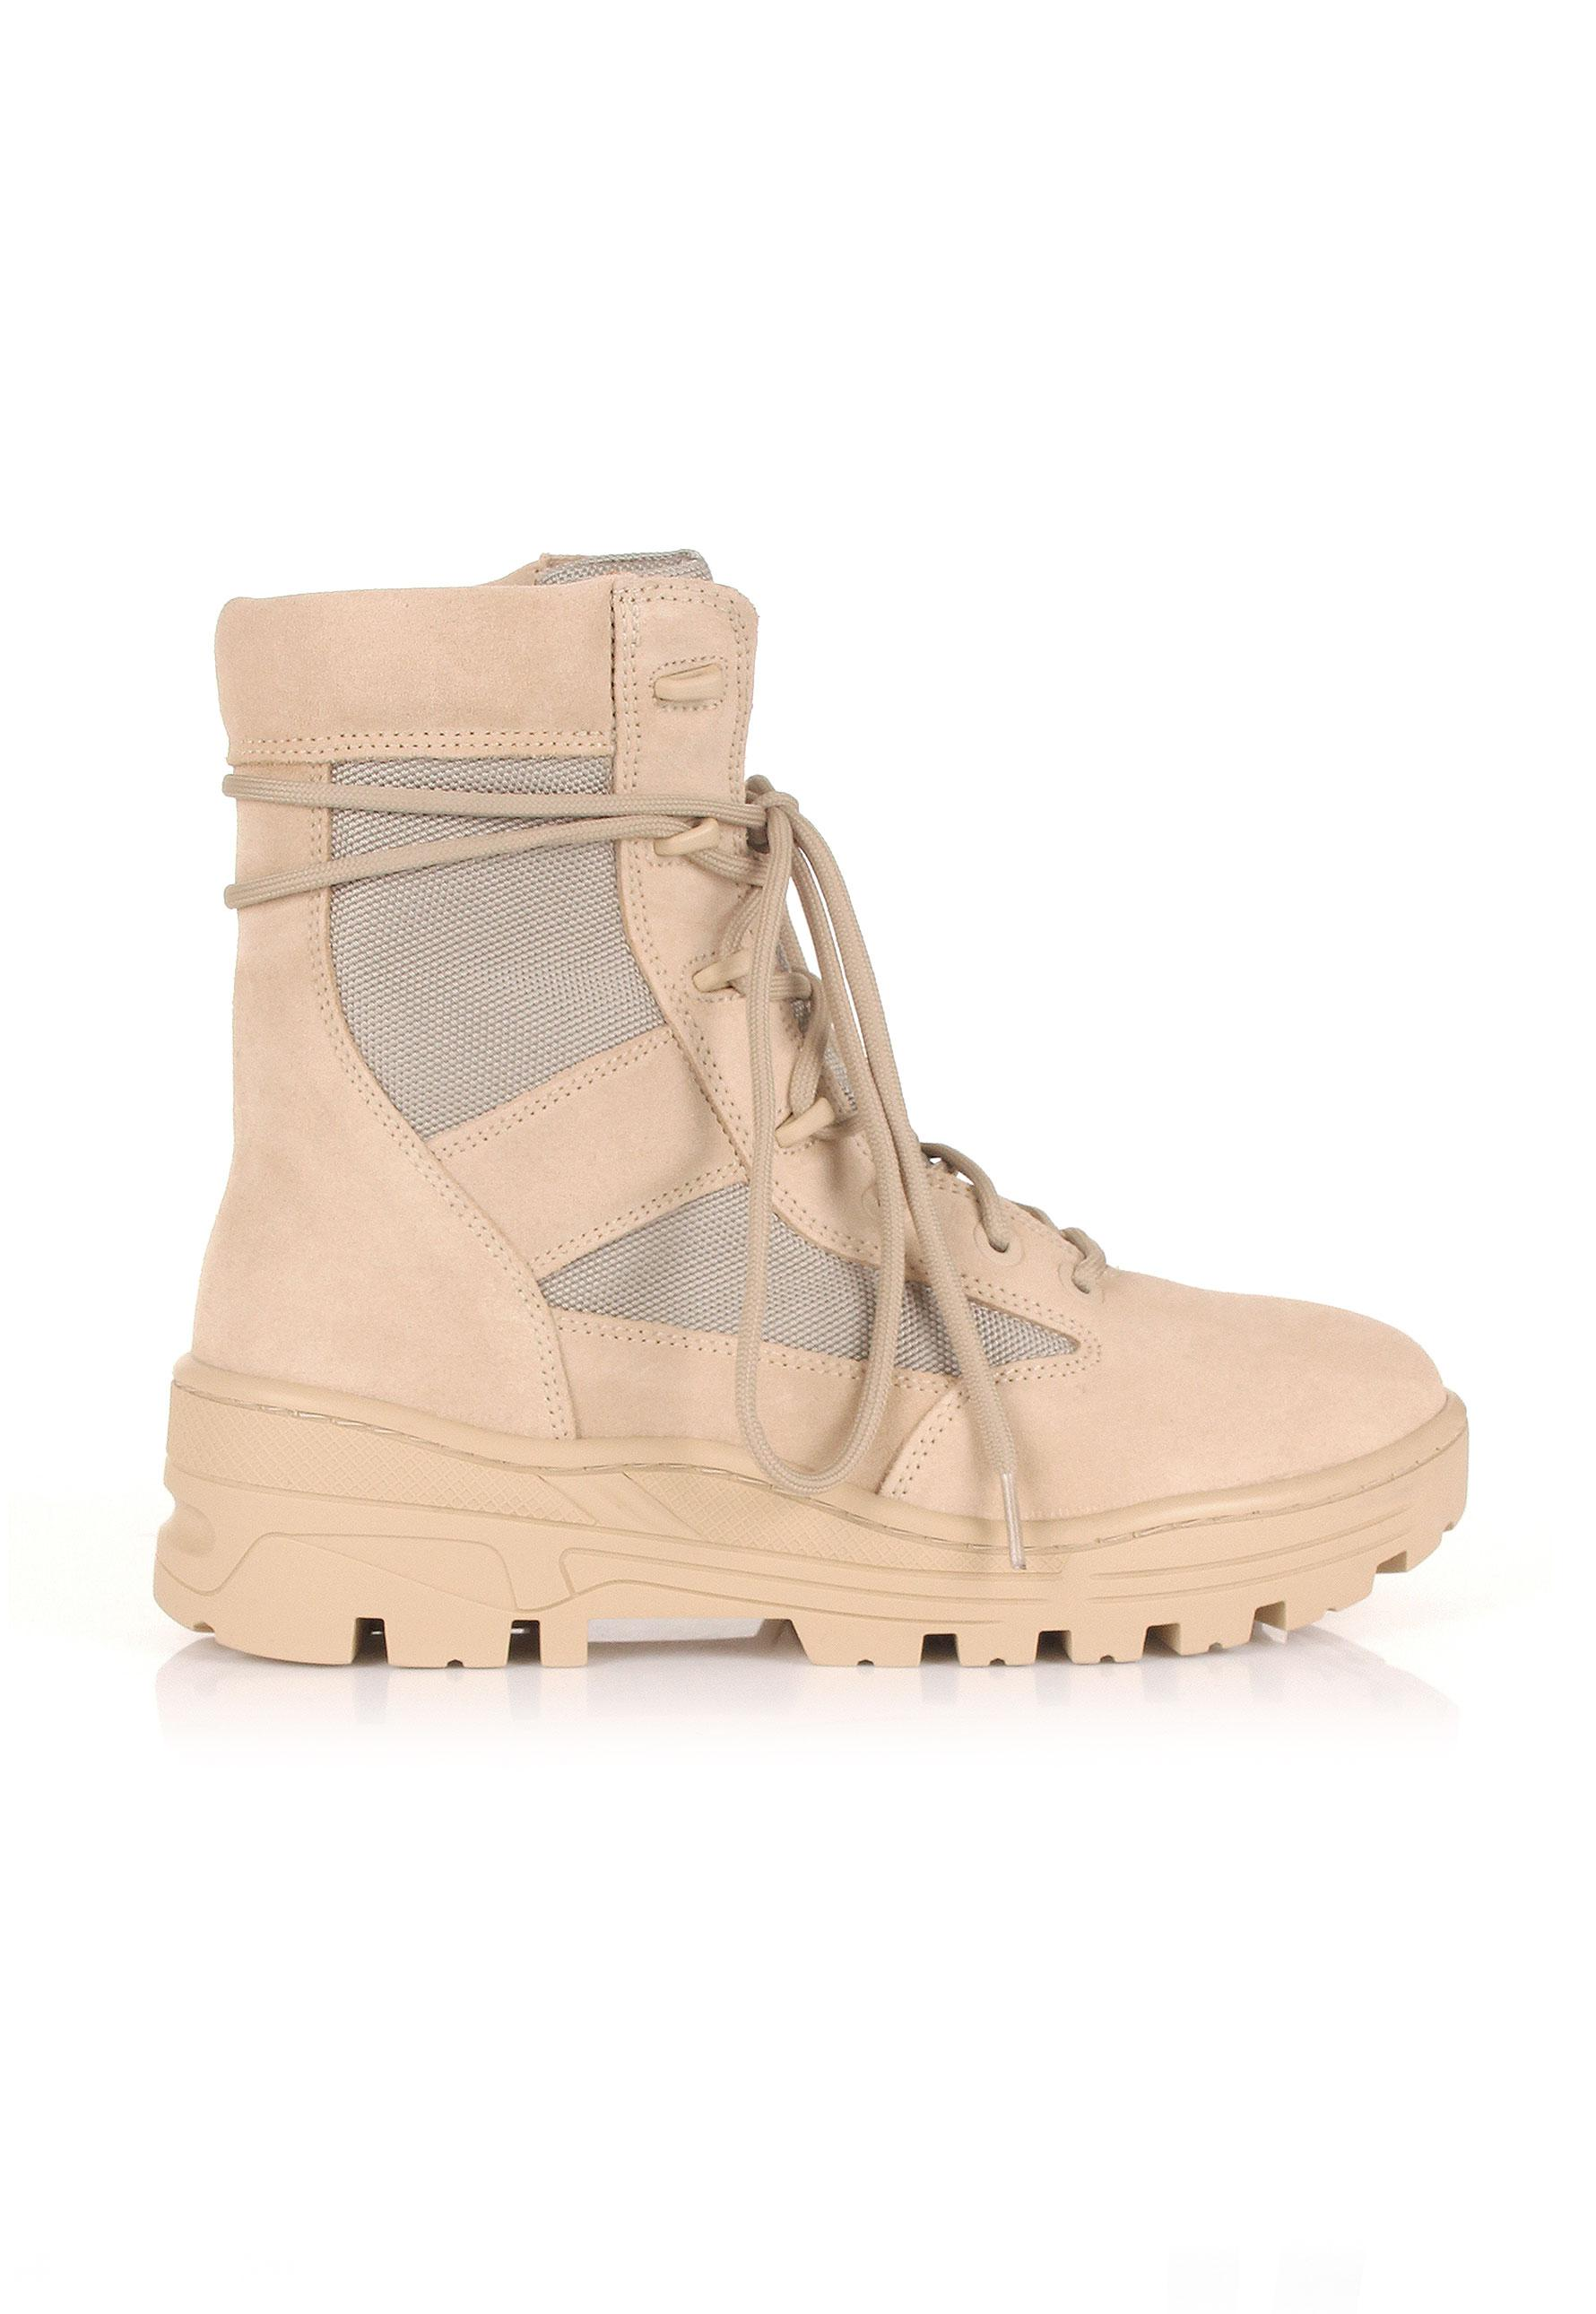 508552210dafc Lyst - Yeezy Season 4 Combat Boots Sand in Natural